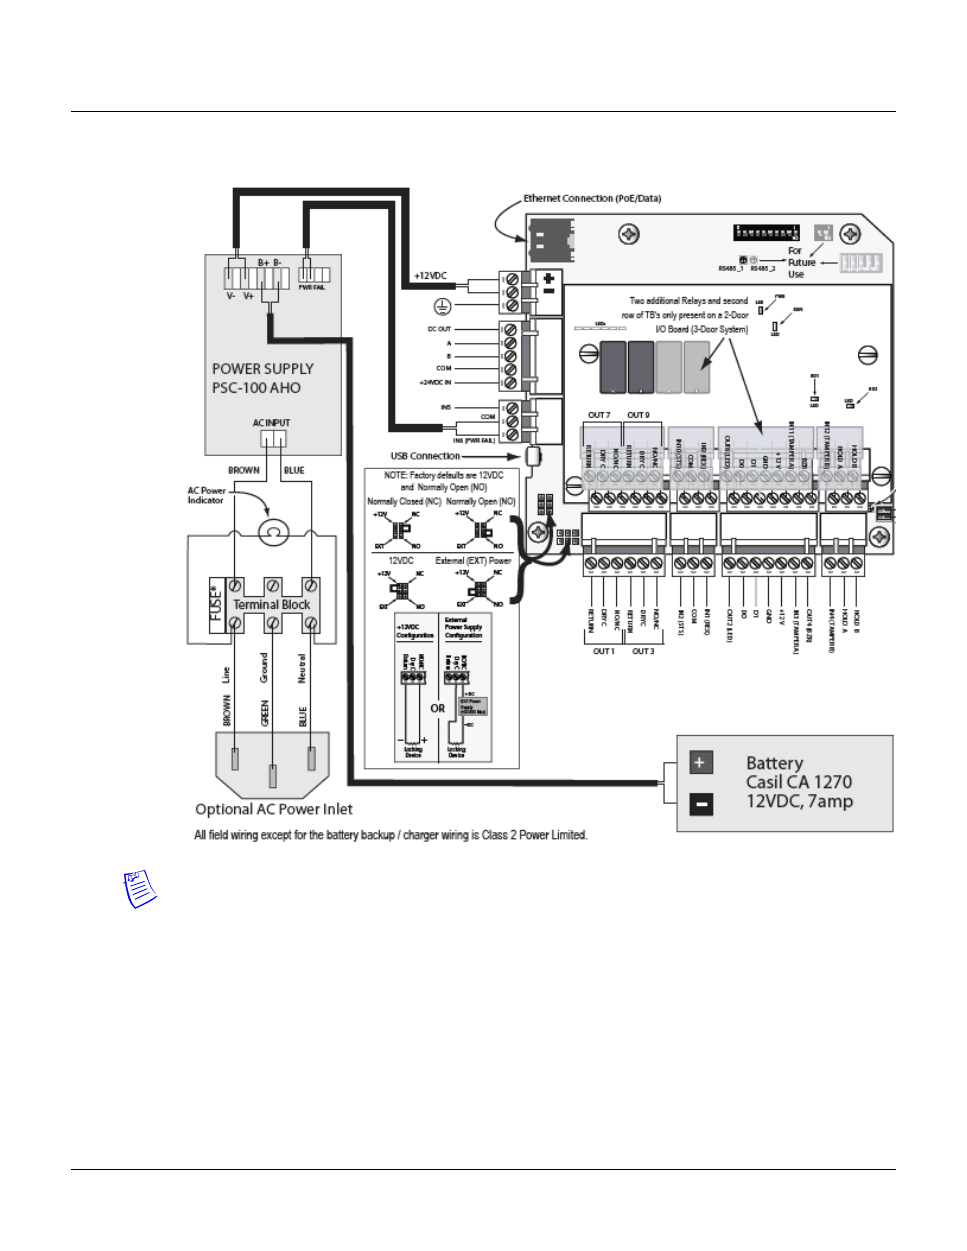 Honeywell Network Hardware Netaxs 123 Users Manual Page Bunn Grx Wiring Diagram Background Image